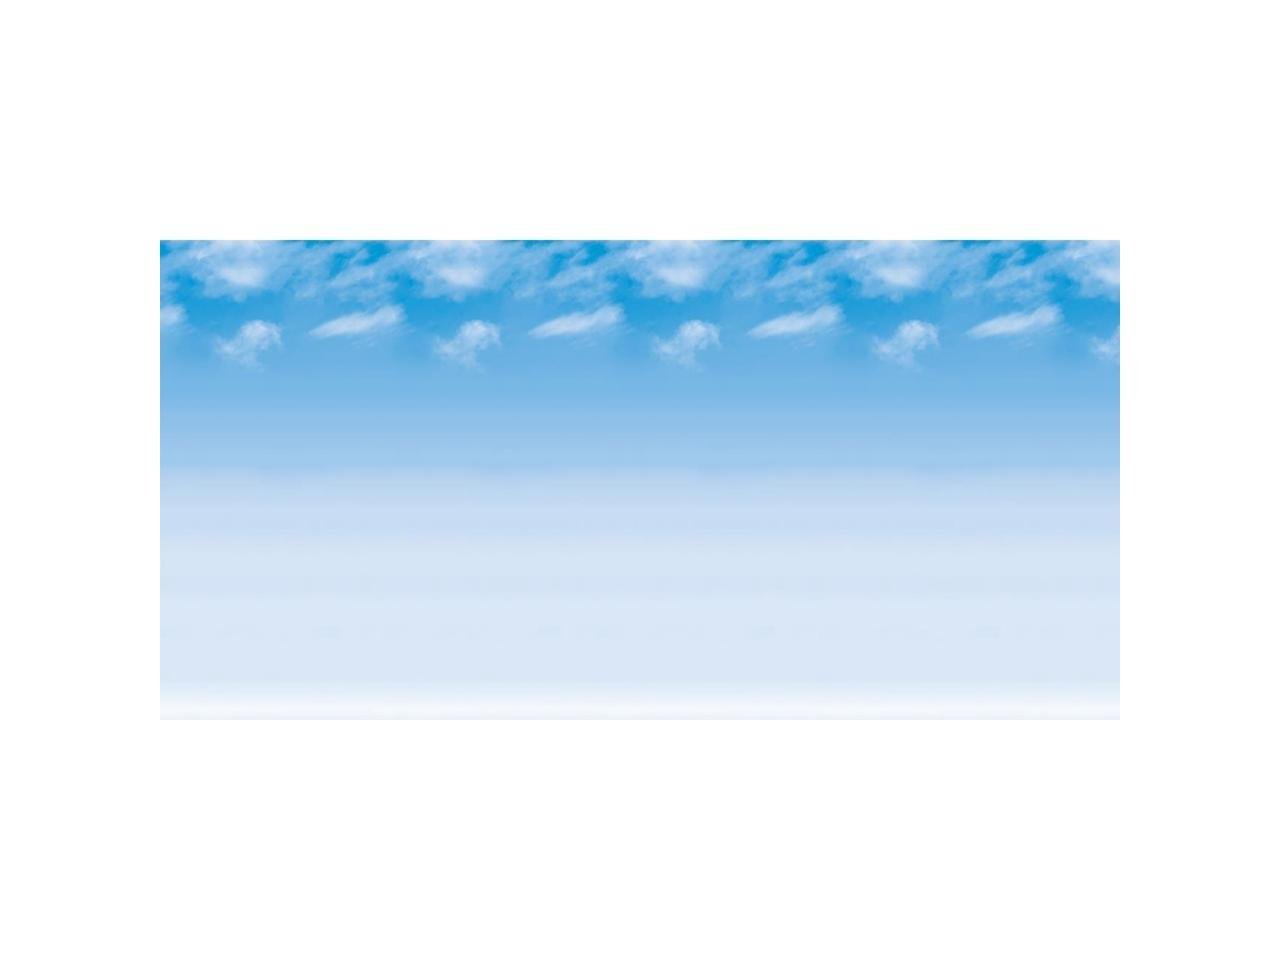 Papers Clouds Board Design 29444569355Ebay Wispy Fadeless Bulletin dQChtsr